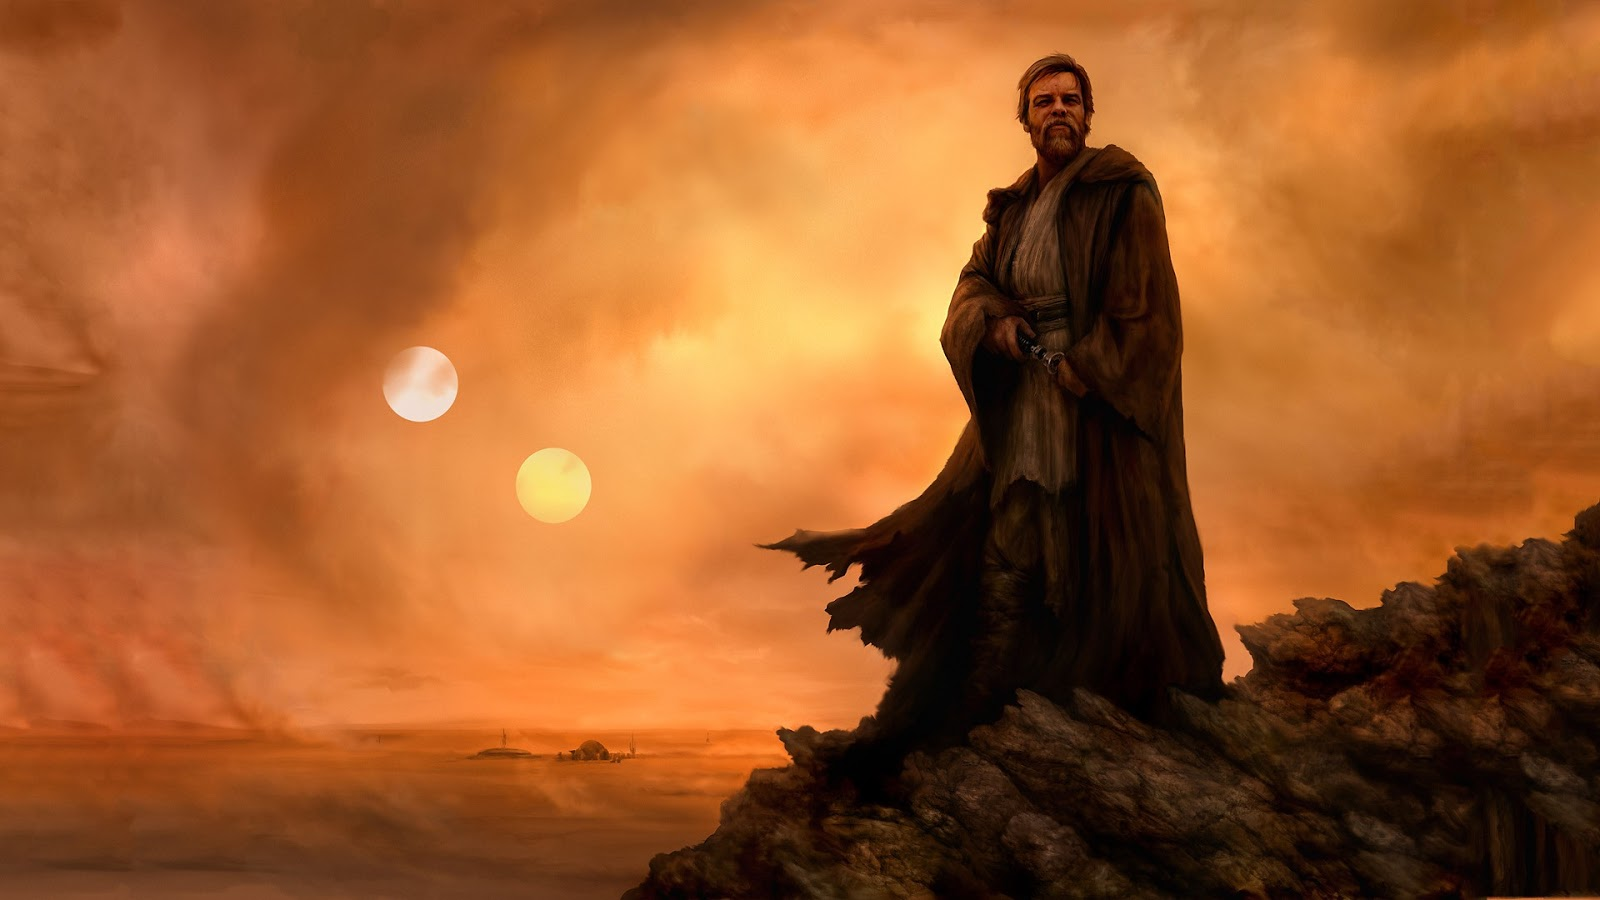 Luke Skywalker Full Hd Wallpaper Starwars Markhamill Lukeskywalker